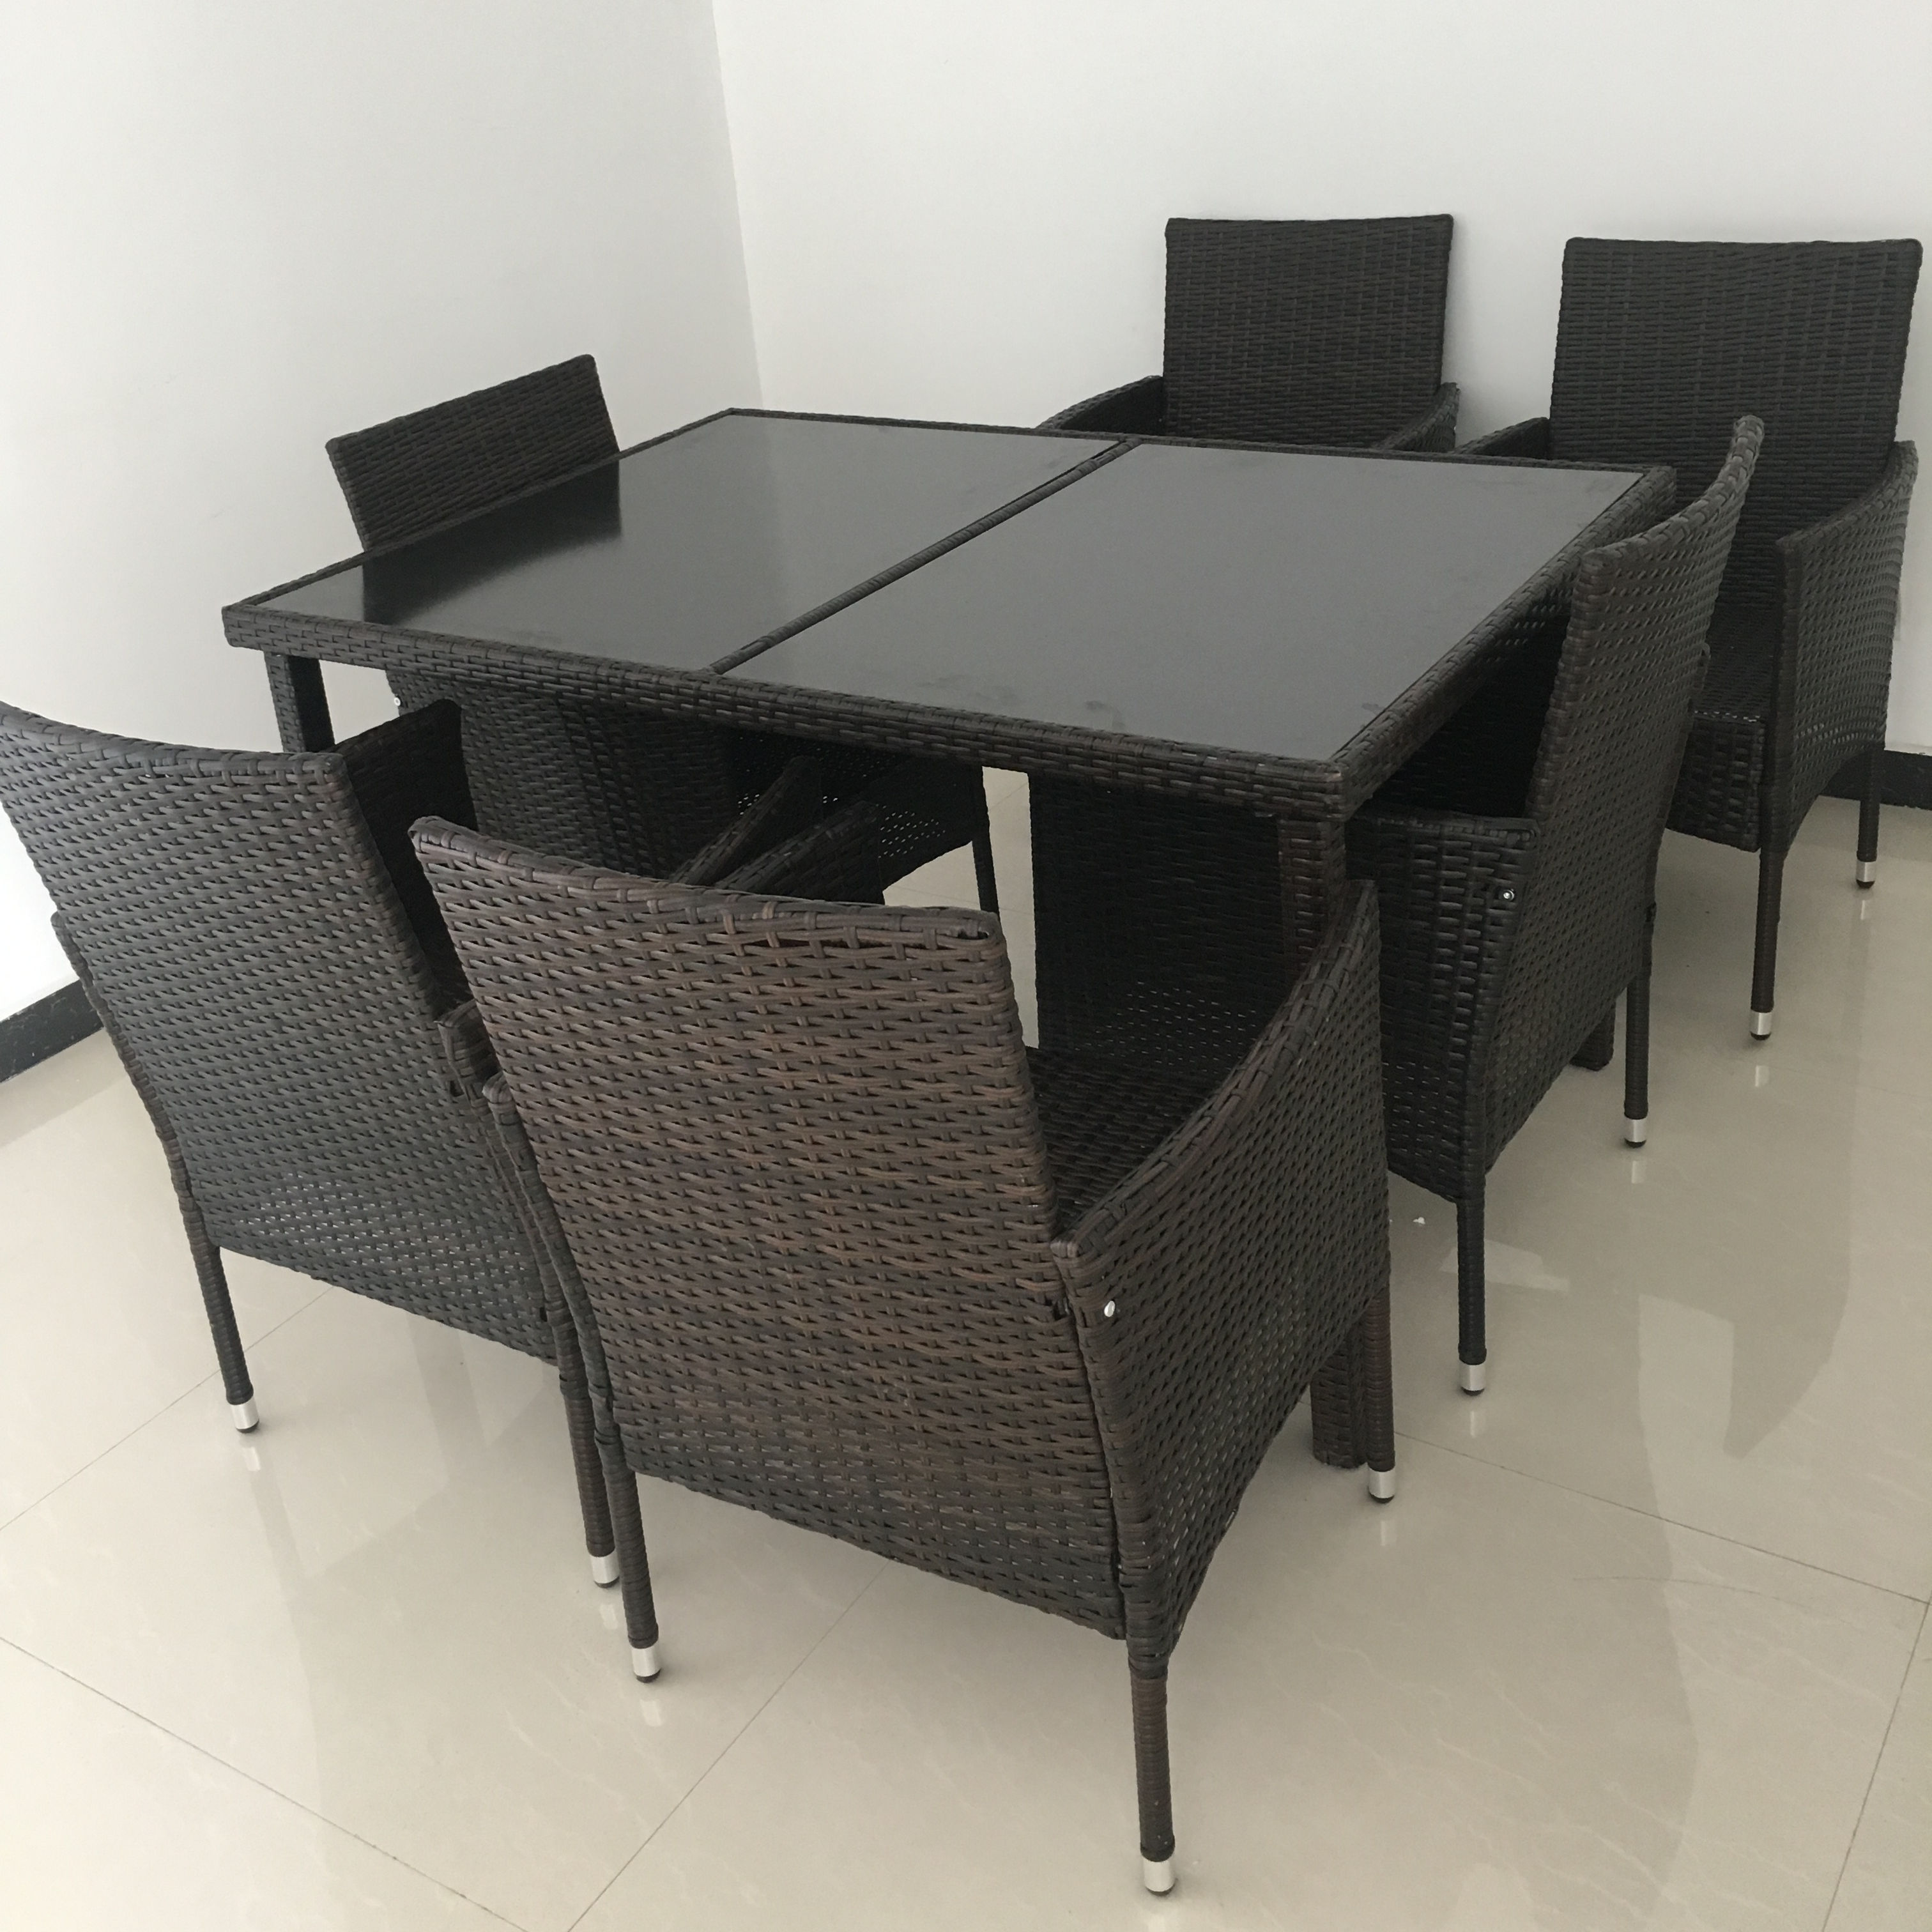 Resin Hitam Patio Taman Set Coklat Kolam Wicker Furniture Tempat Makan Kantor Hotel Wicker Furniture